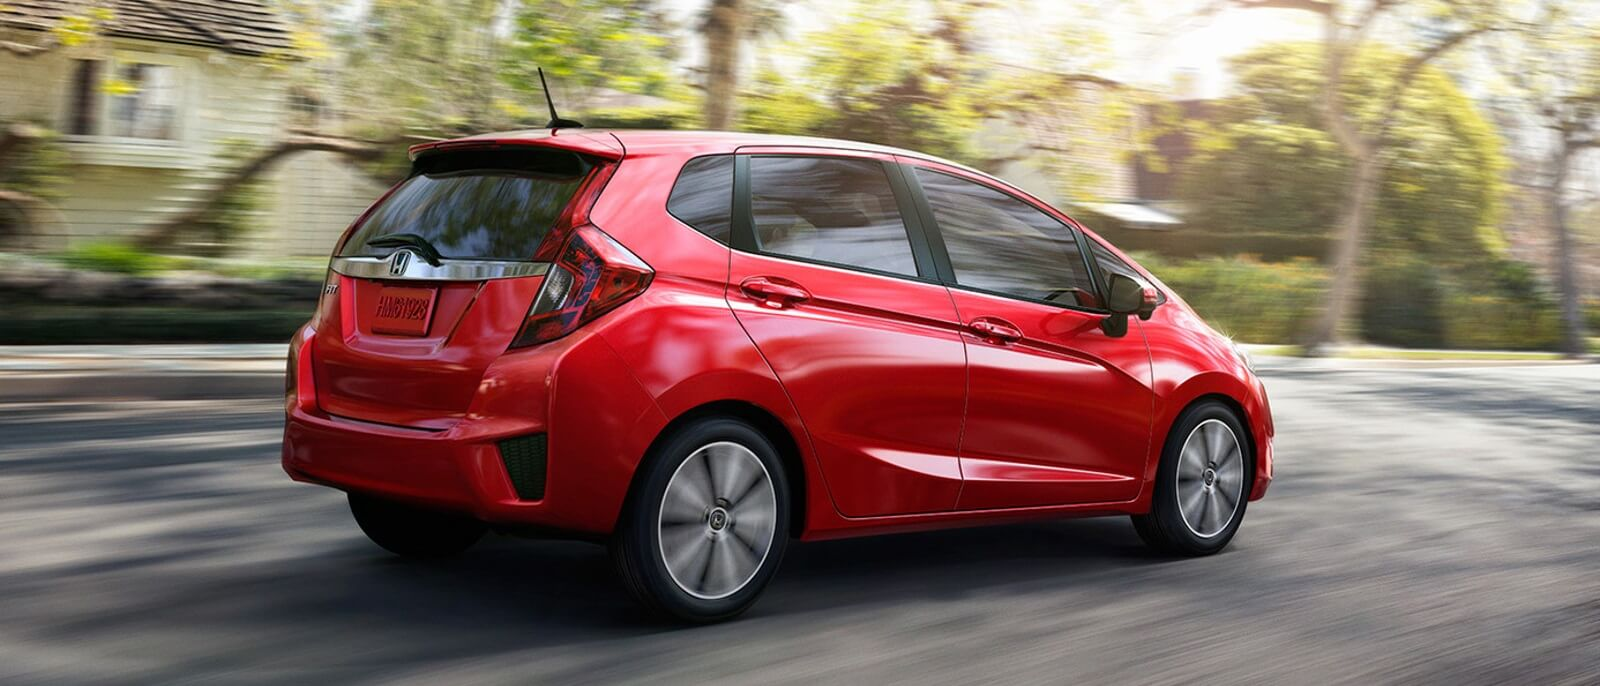 2016 Honda Fit red